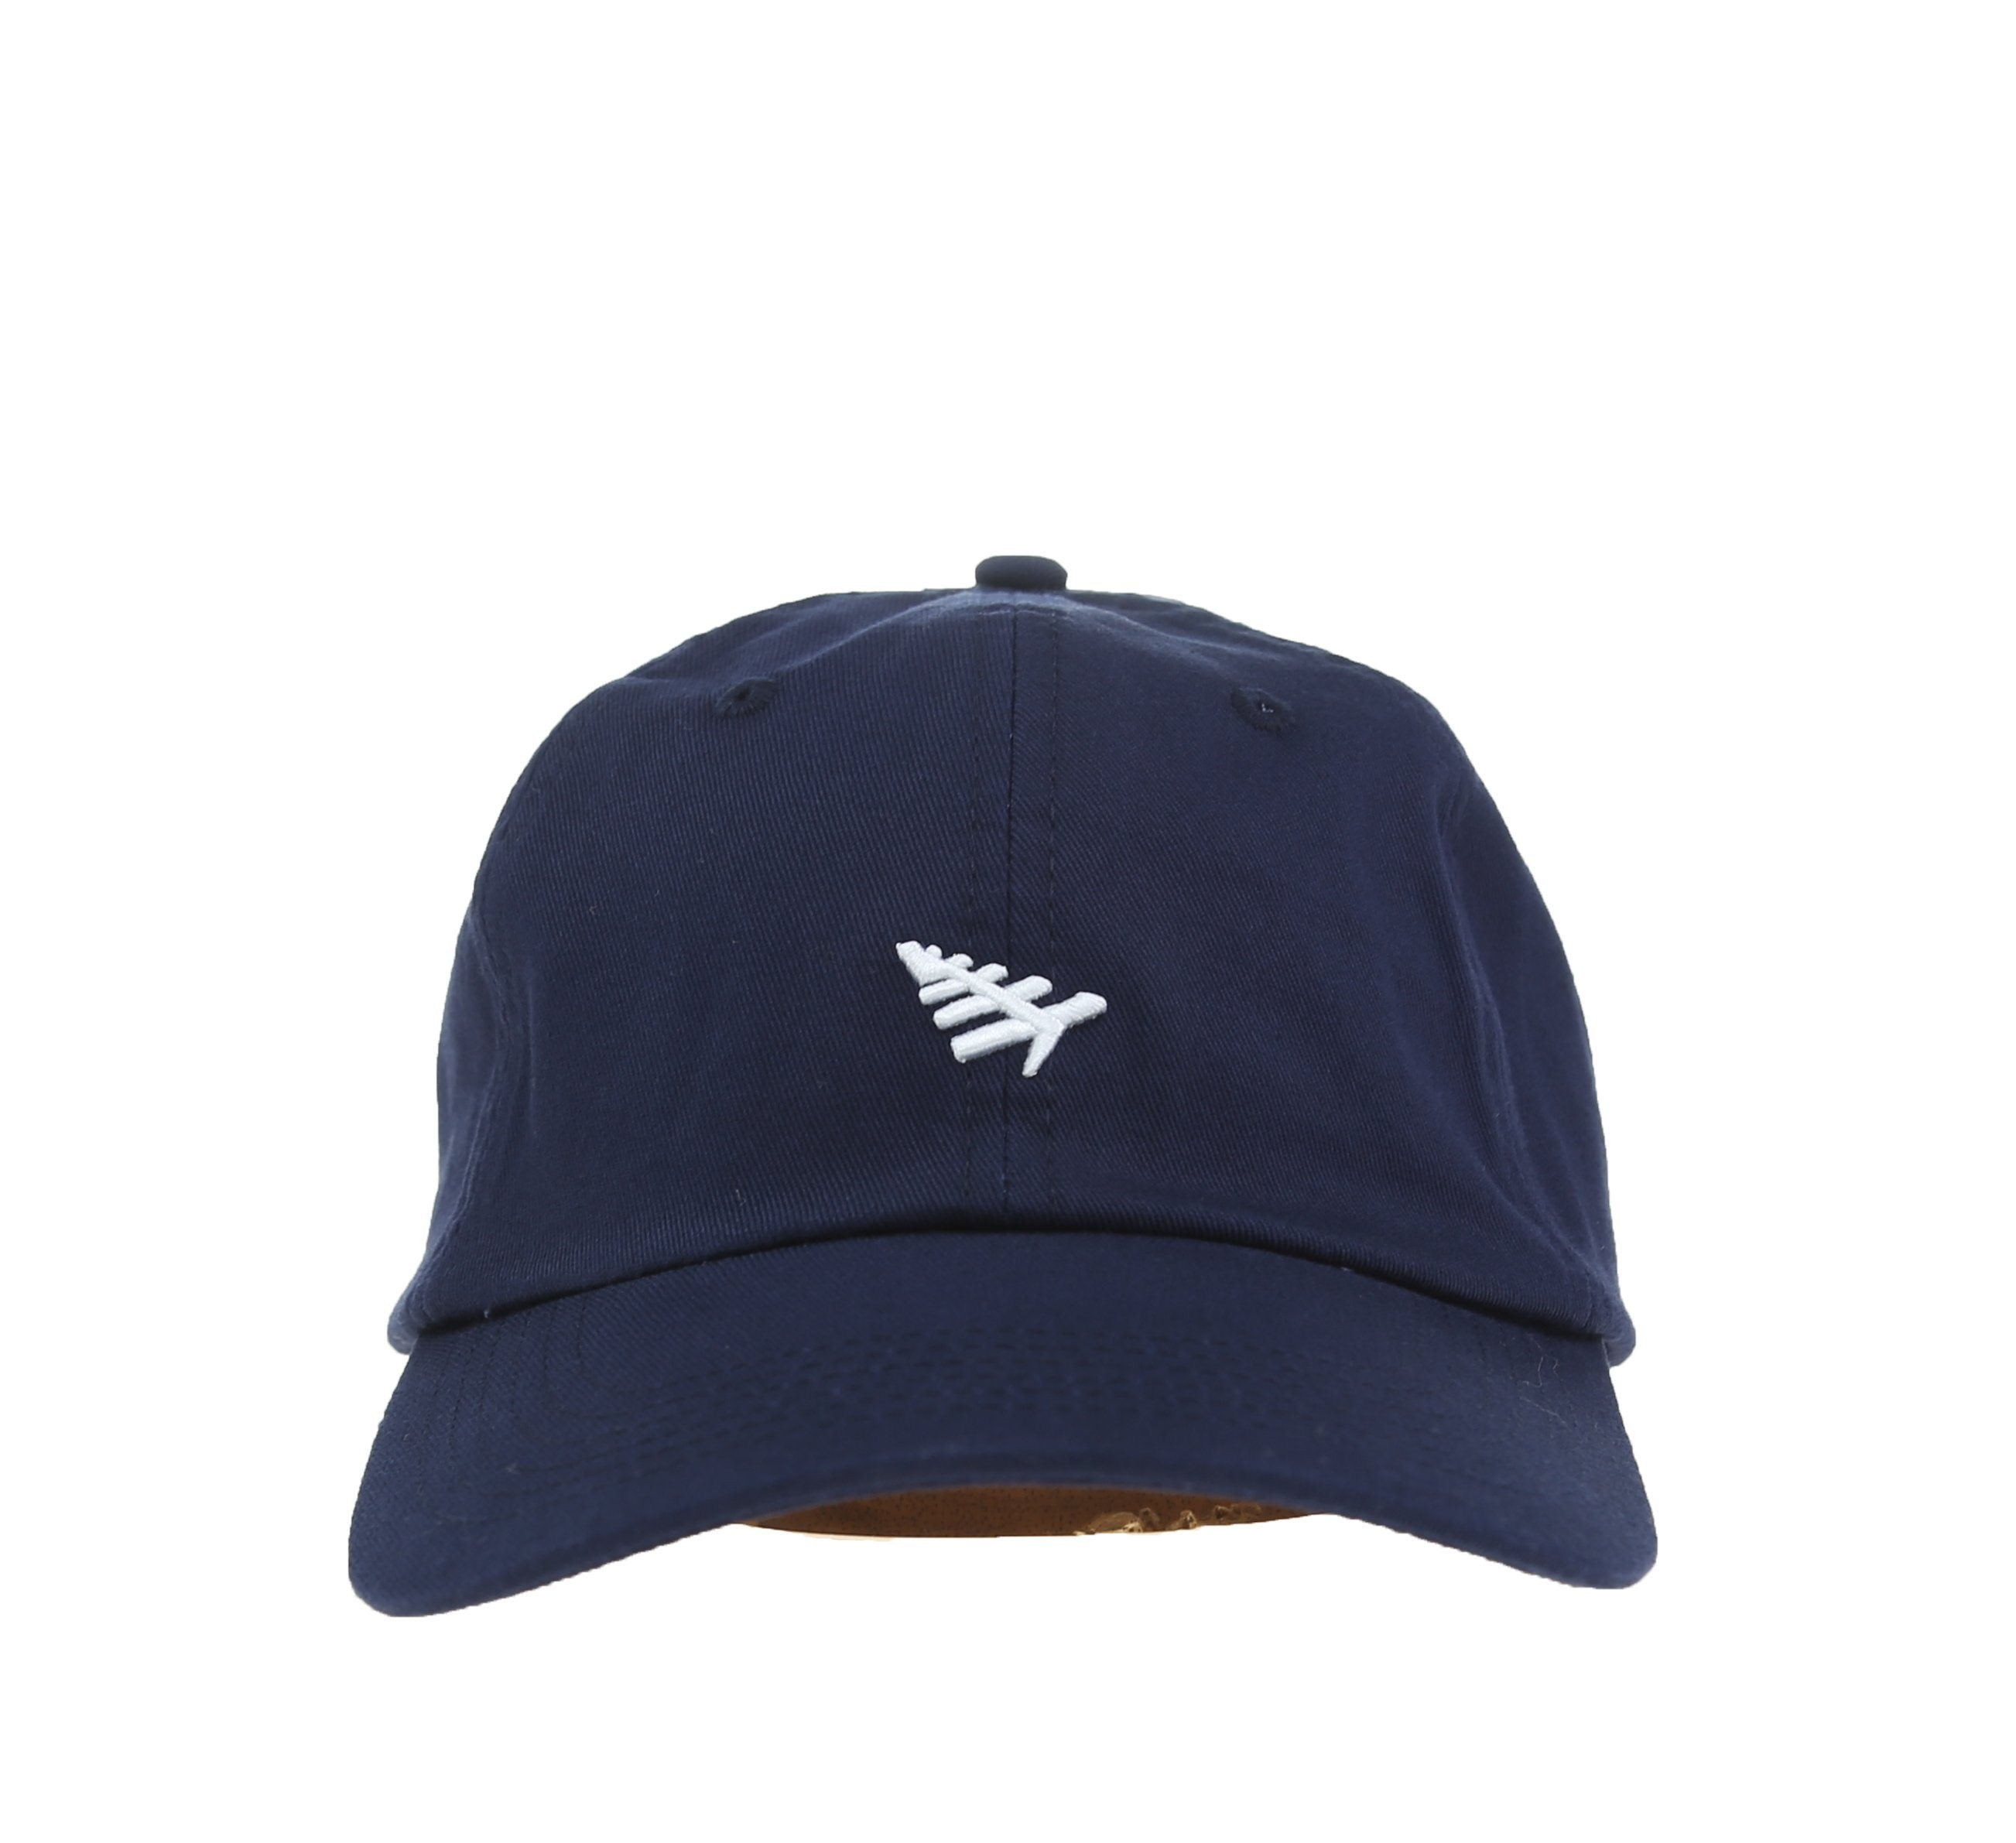 Roc Nation Plane Icon Dad Hat Navy Products t 18206029d480